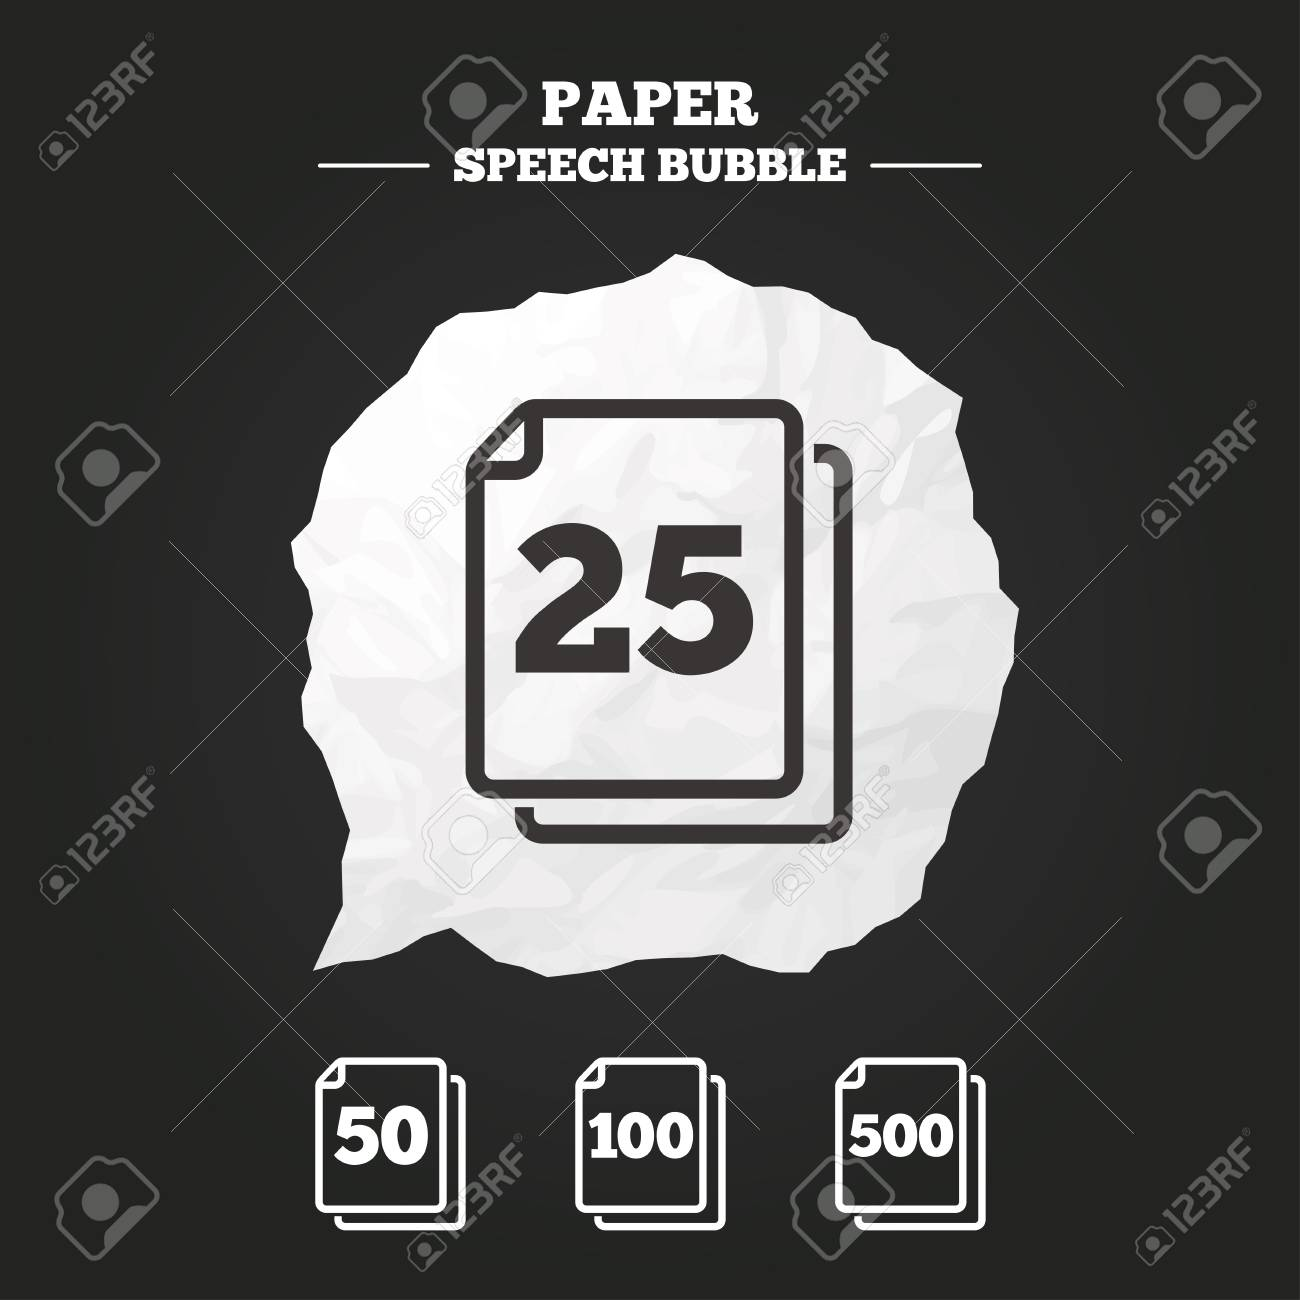 in pack sheets icons quantity per package symbols 25 50 100 and